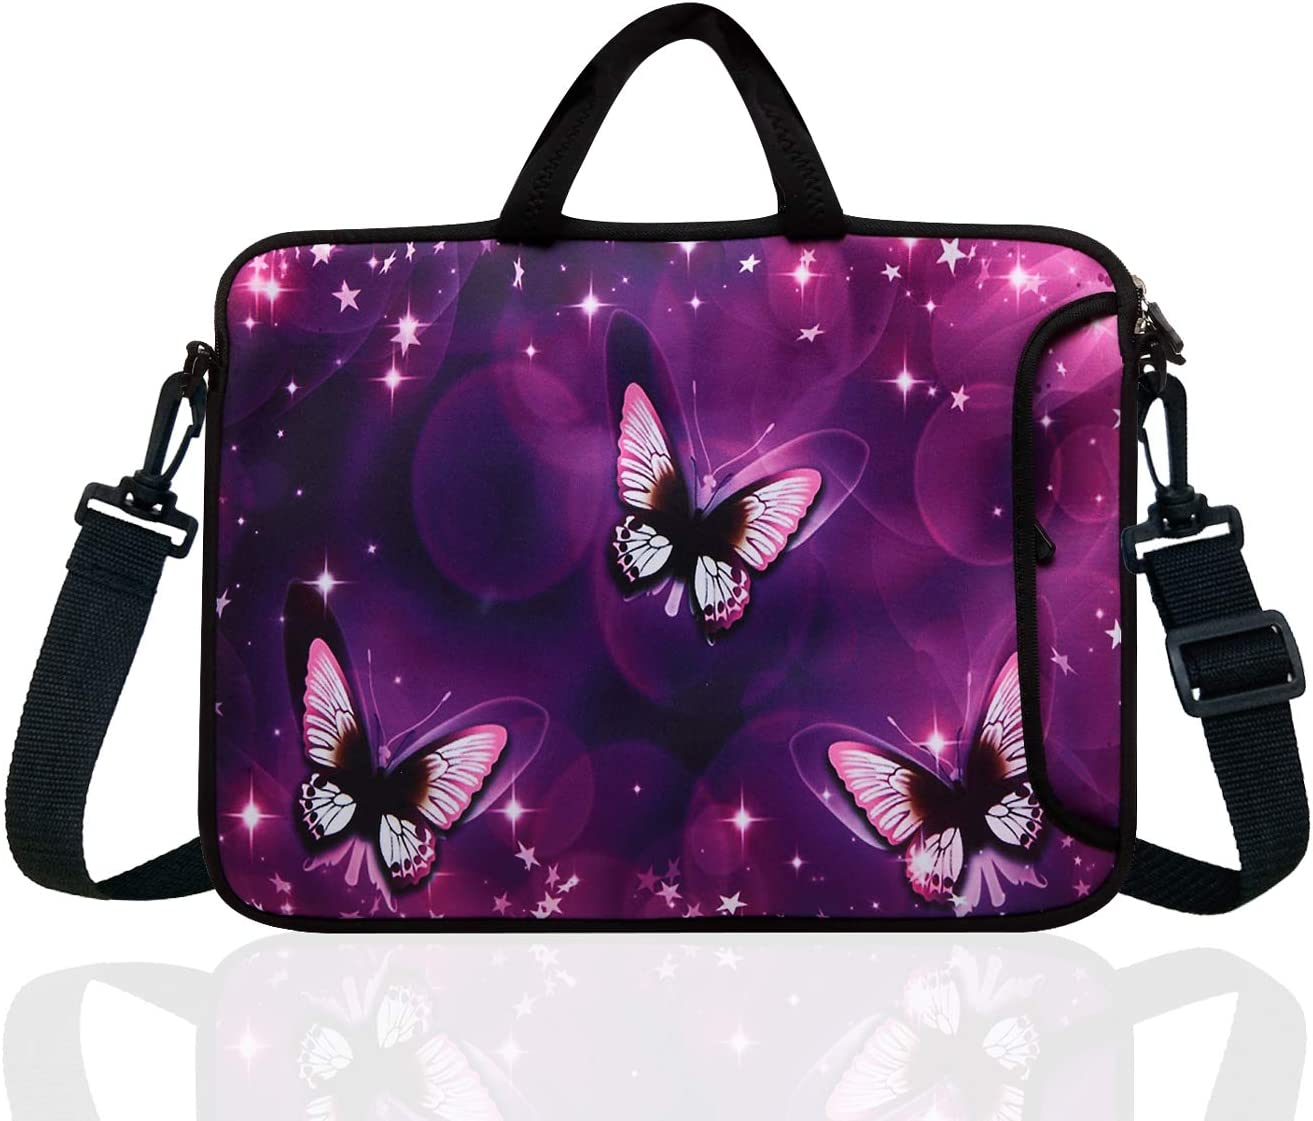 "14-Inch Neoprene Laptop Shoulder Messenger Bag Case Sleeve for 13 13.3 14 14.1"" Inch Notebook/Chromebook (Purple Butterfly)"